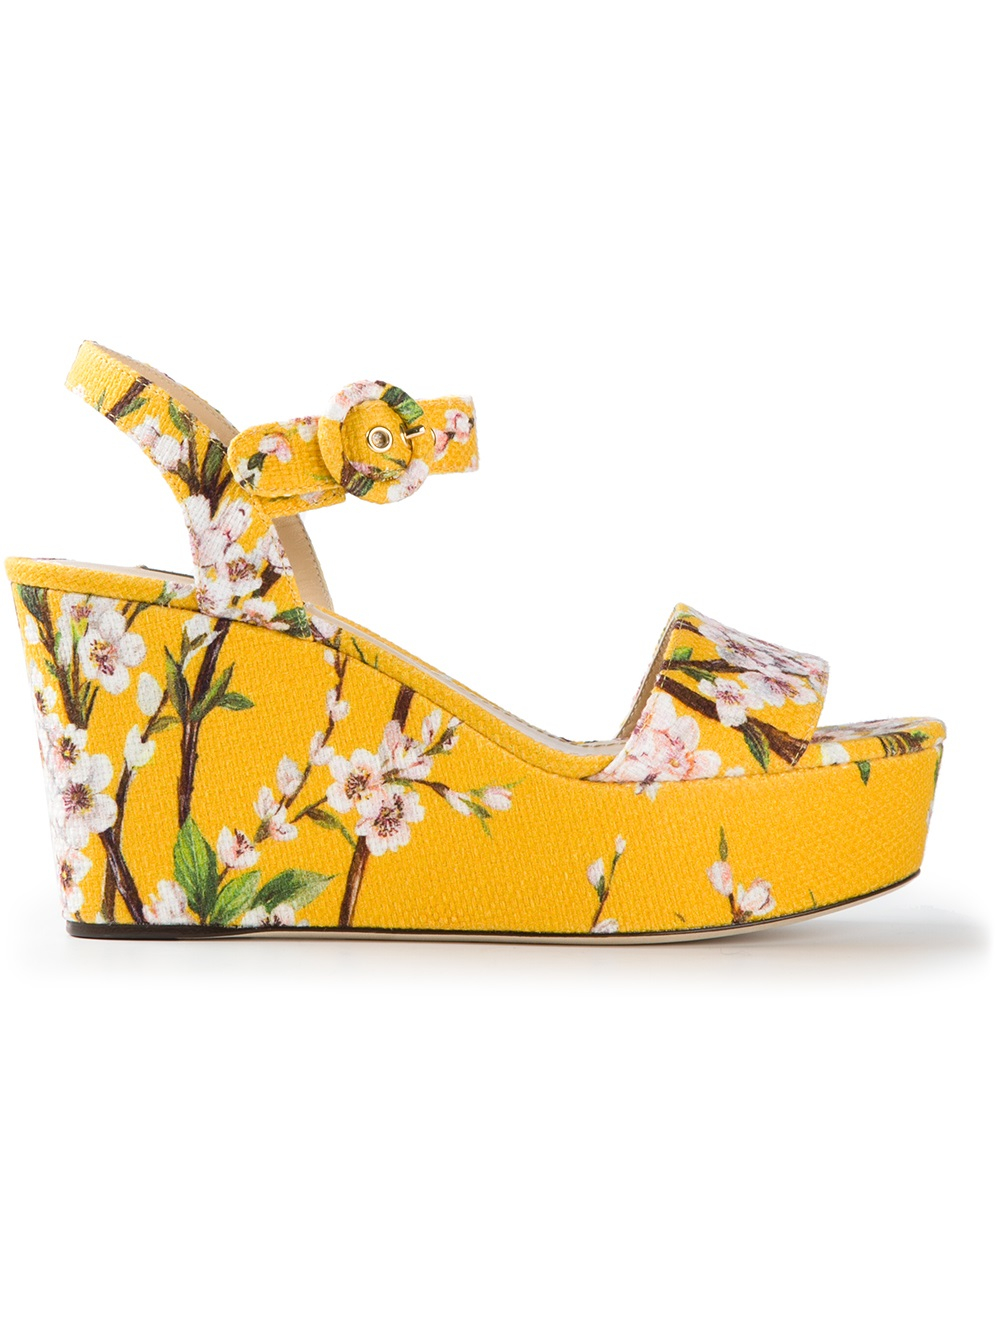 Dolce Amp Gabbana Floral Print Wedge Sandal In Yellow Lyst